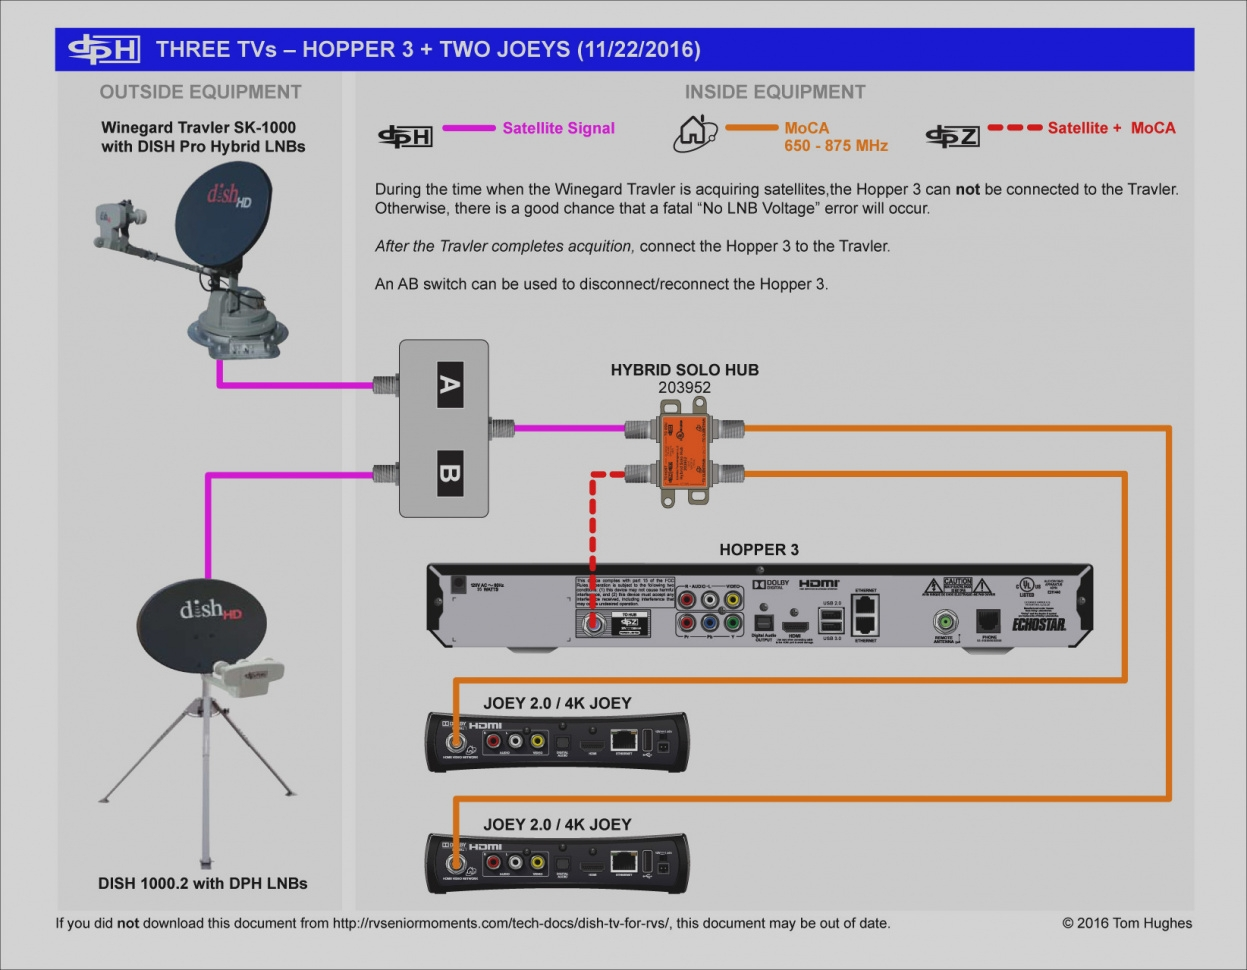 hight resolution of dish network cable diagrams auto electrical wiring diagram dish network cable diagrams